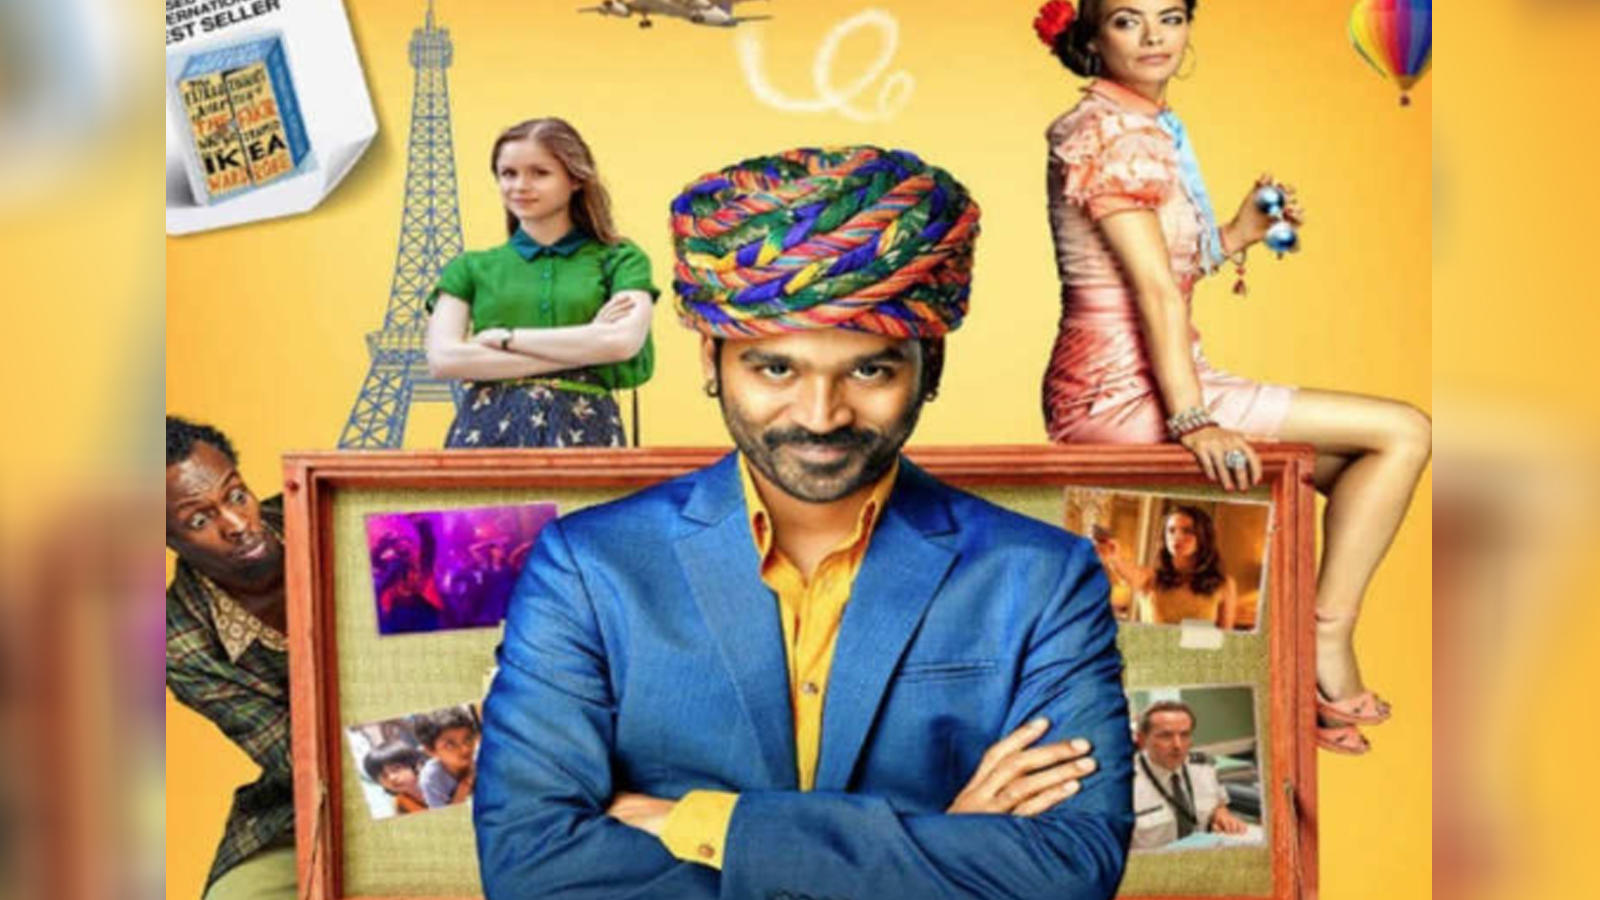 Trailer launch of 'The Extraordinary Journey Of The Fakir'